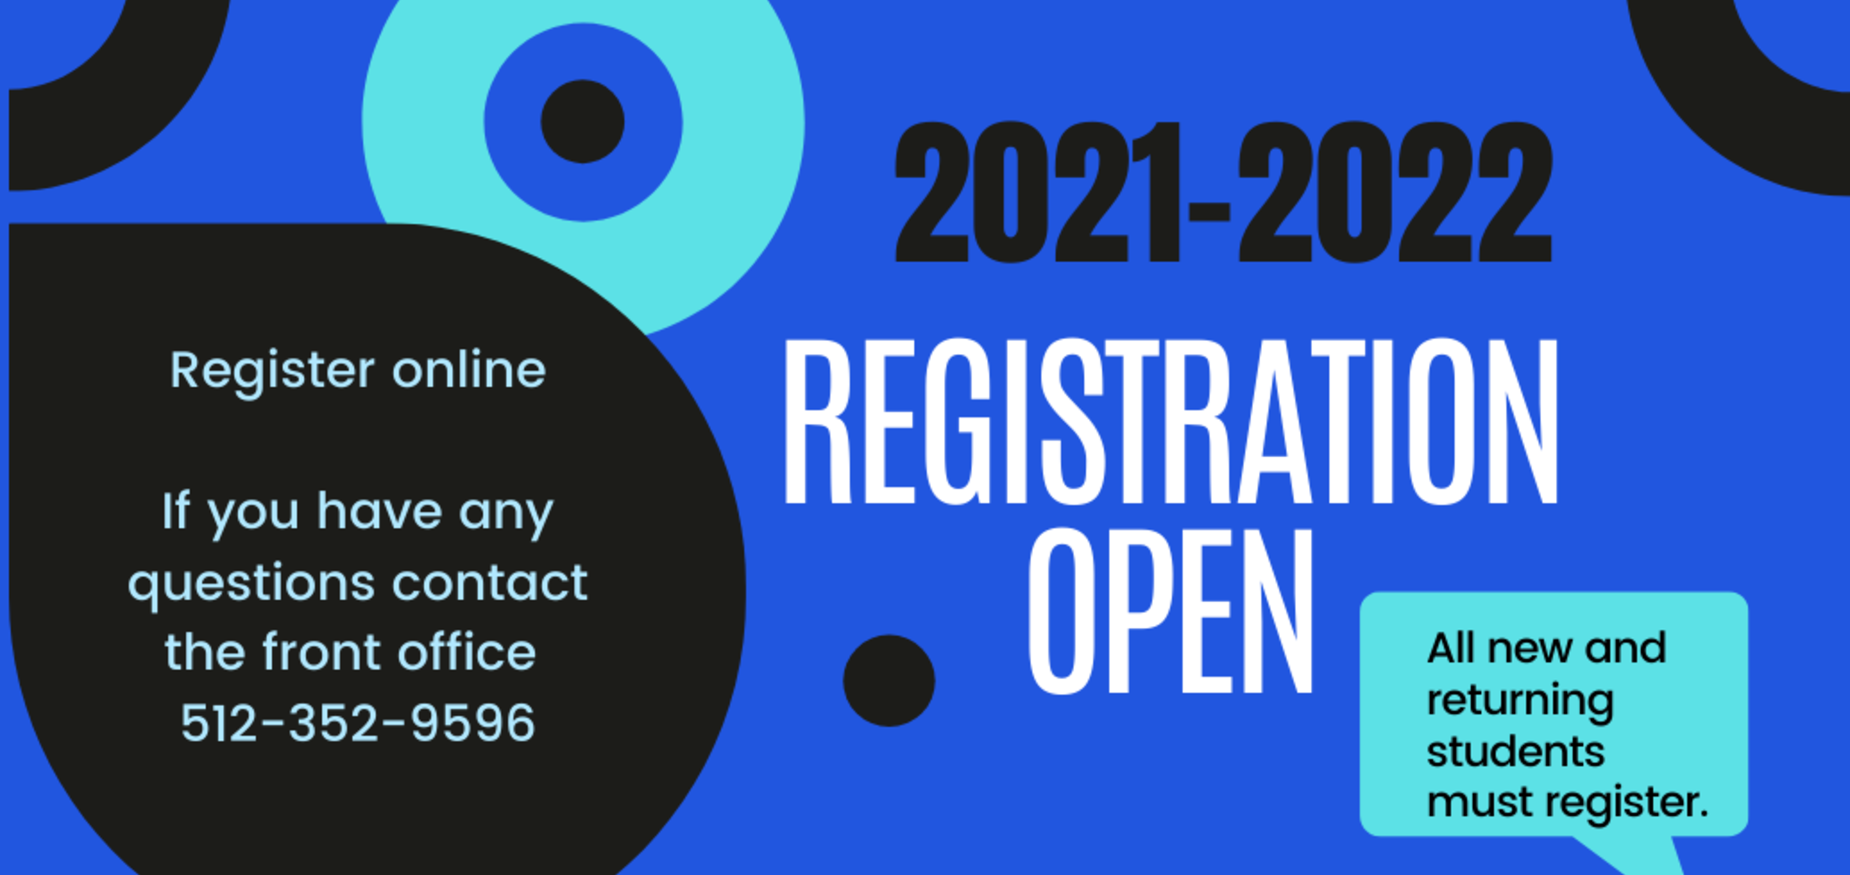 Online registration open for the 2021-2022 school year. All new and returning students must register. Call the front office at 512-352-9596 if you have any questions or need assistance